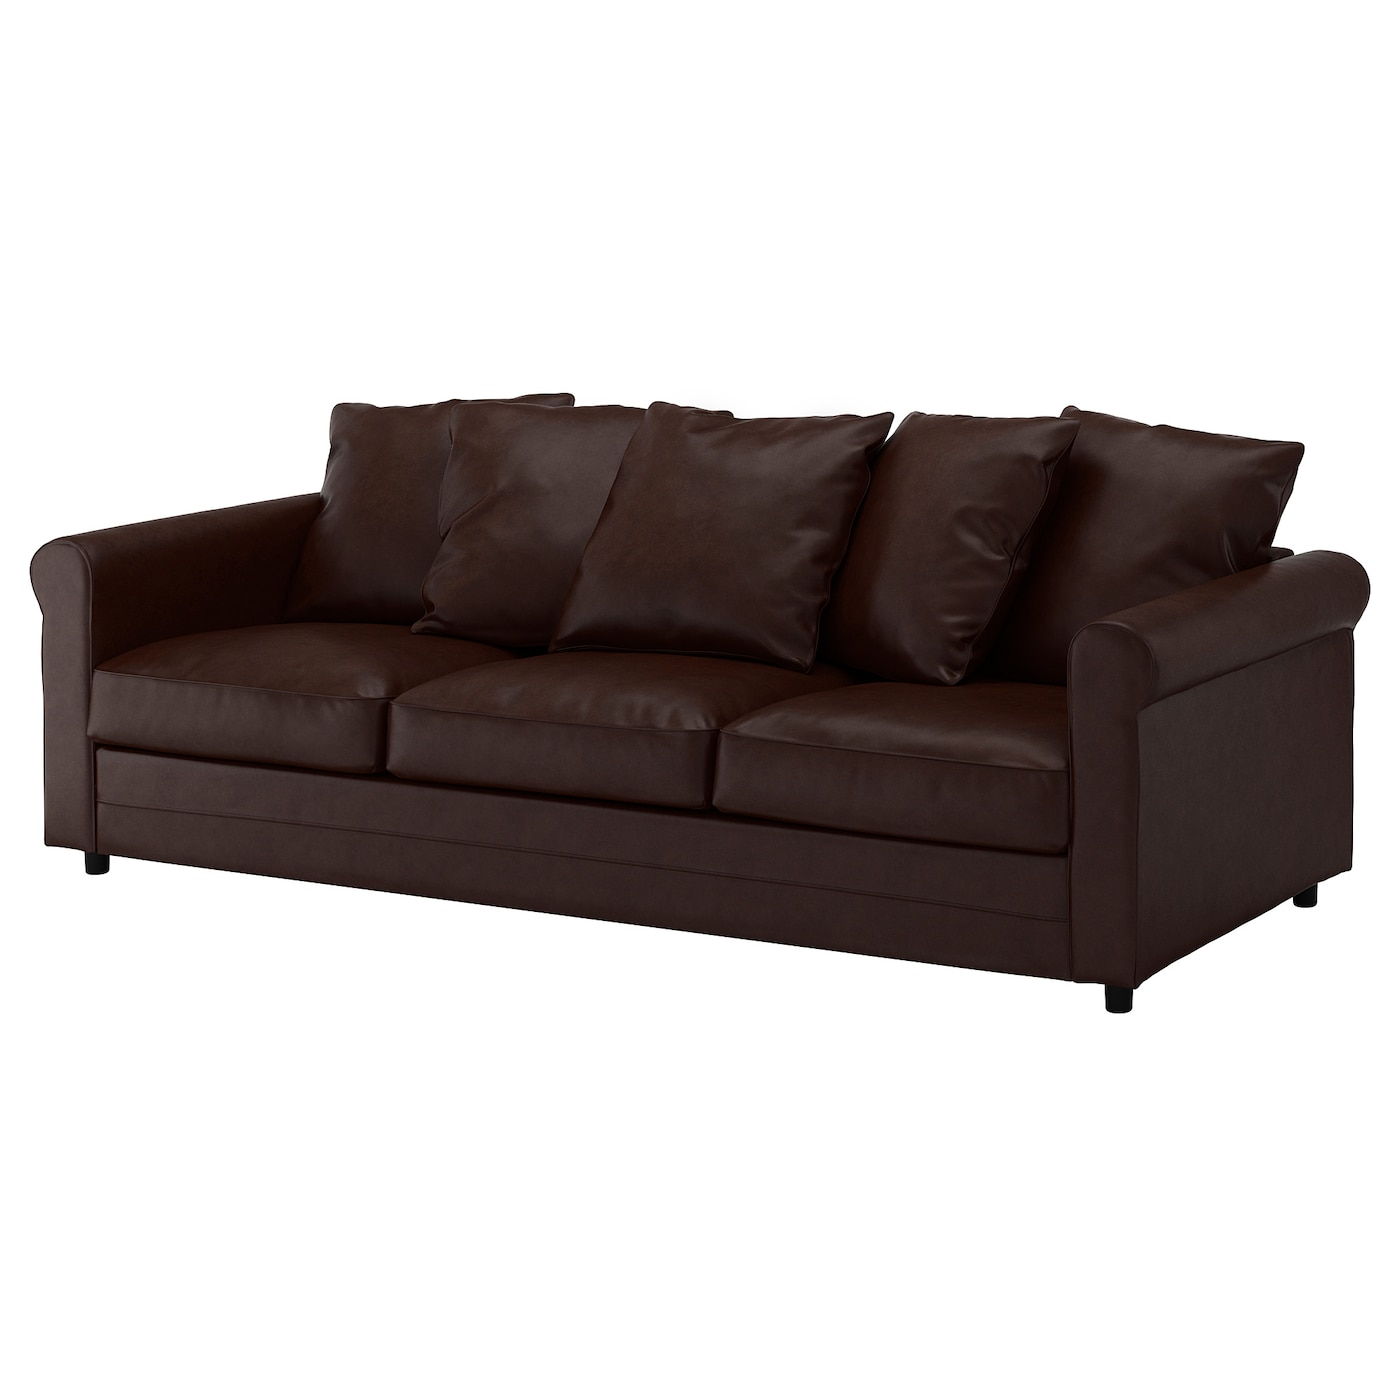 IKEA GRÖNLID 3-seat sofa 10 year guarantee. Read about the terms in the guarantee brochure.